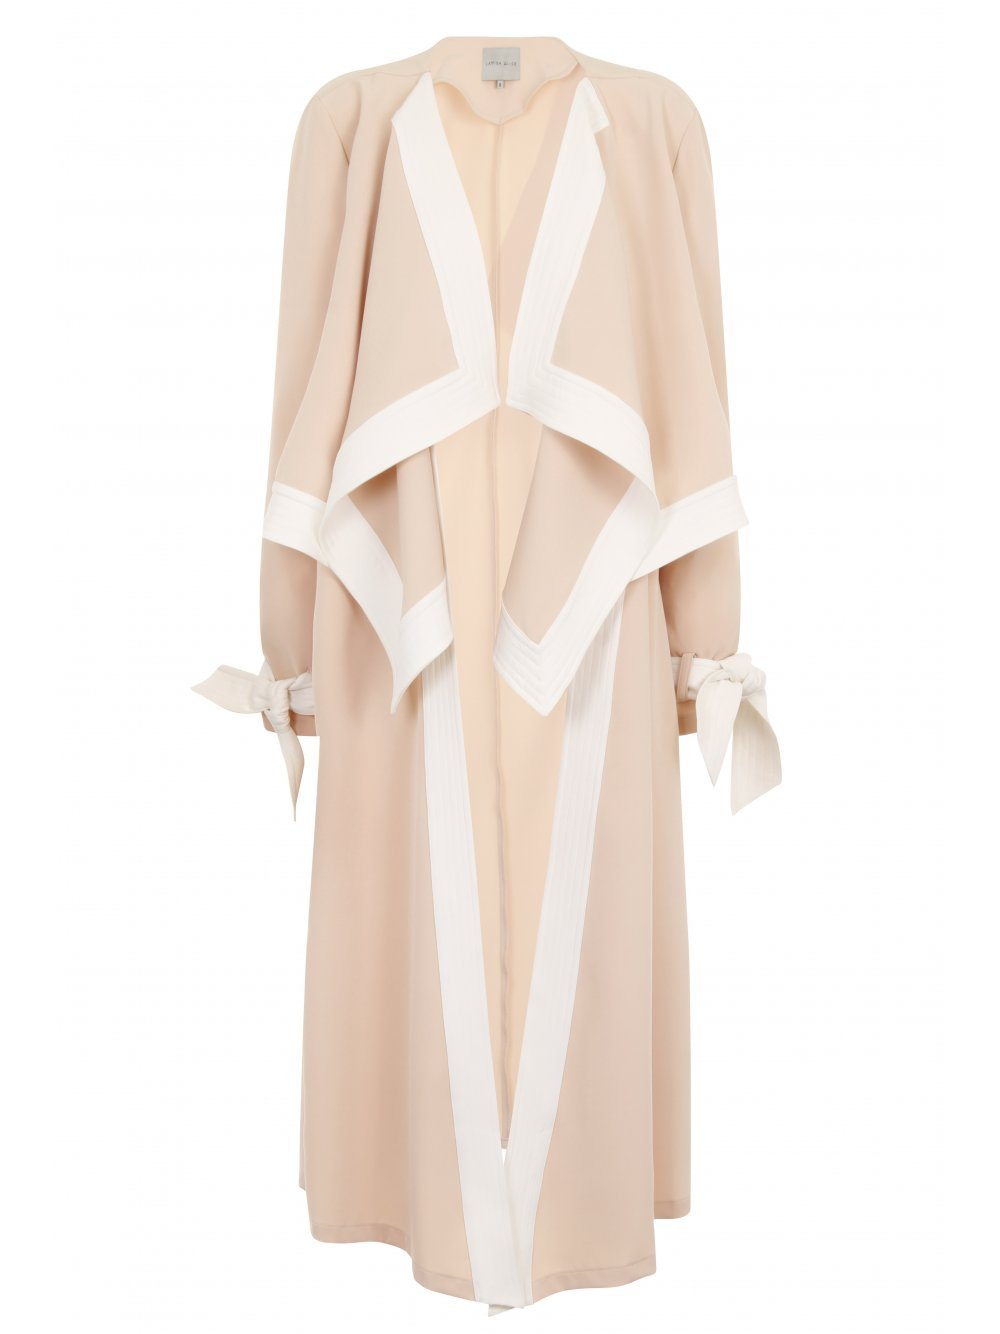 Nude & White Contrast Stitch Sash Tie Oversized Collar Tailored Coat